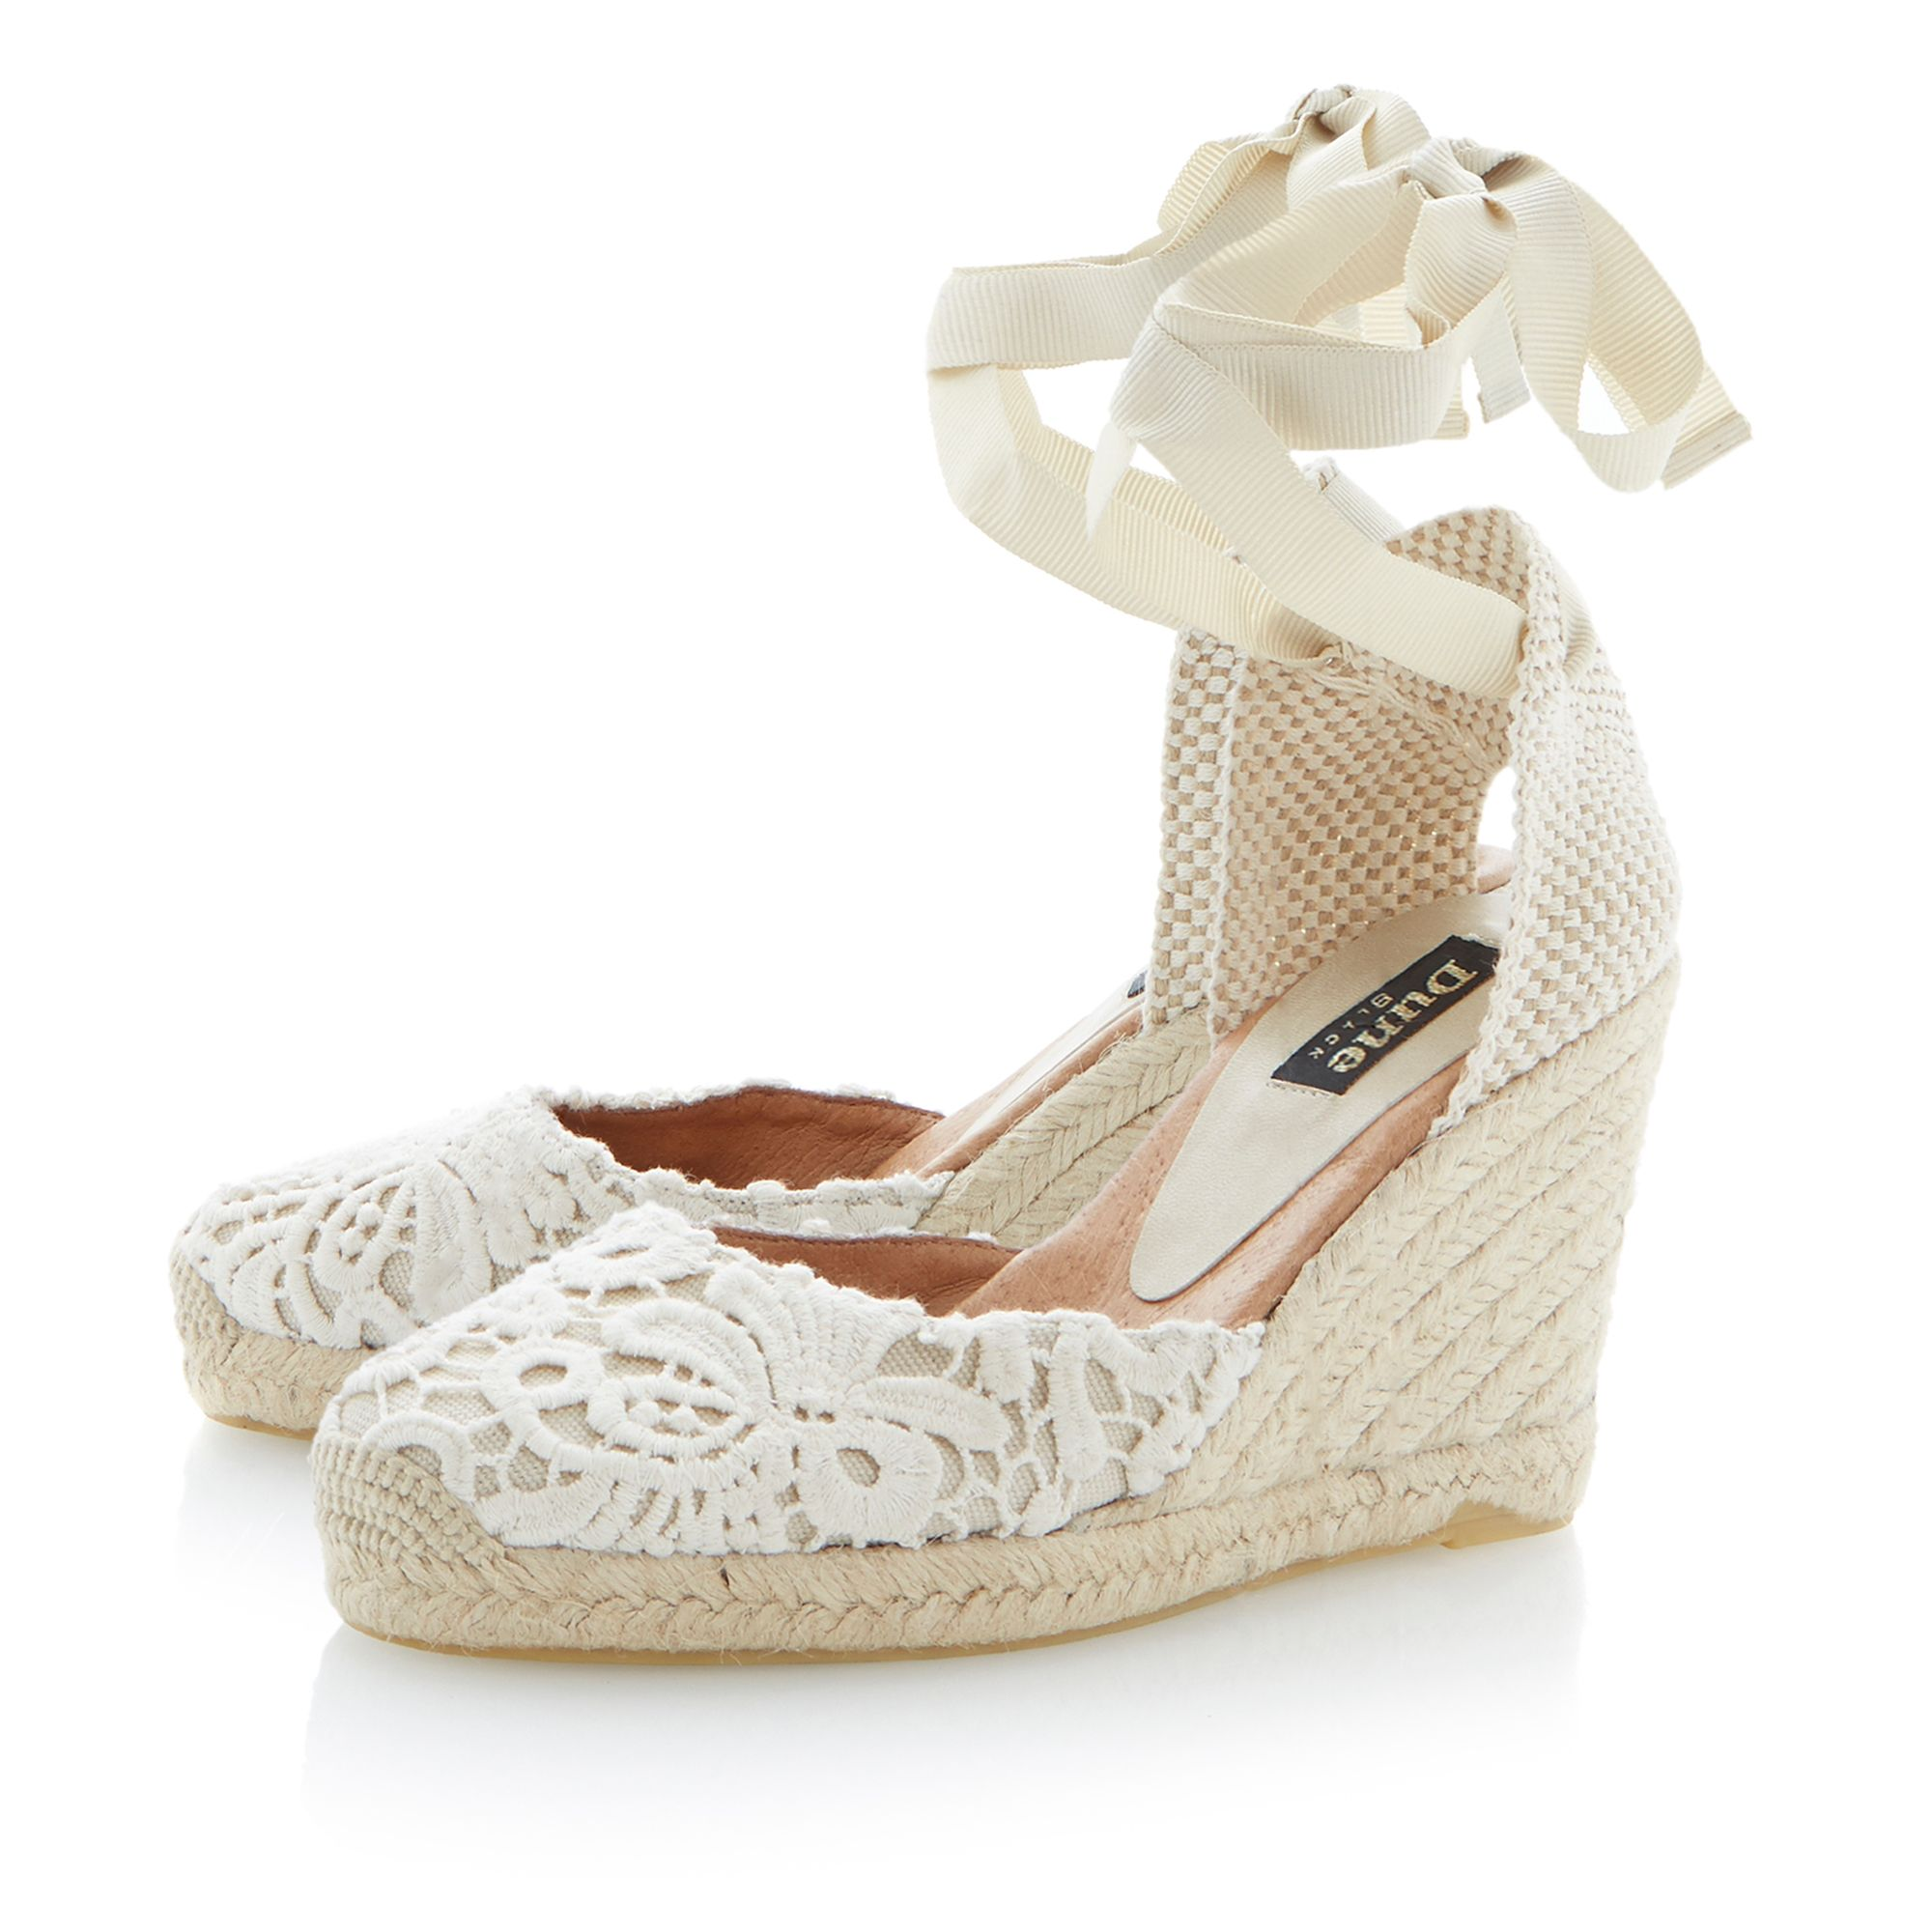 Lambo fabric round toe wedge espadrilles